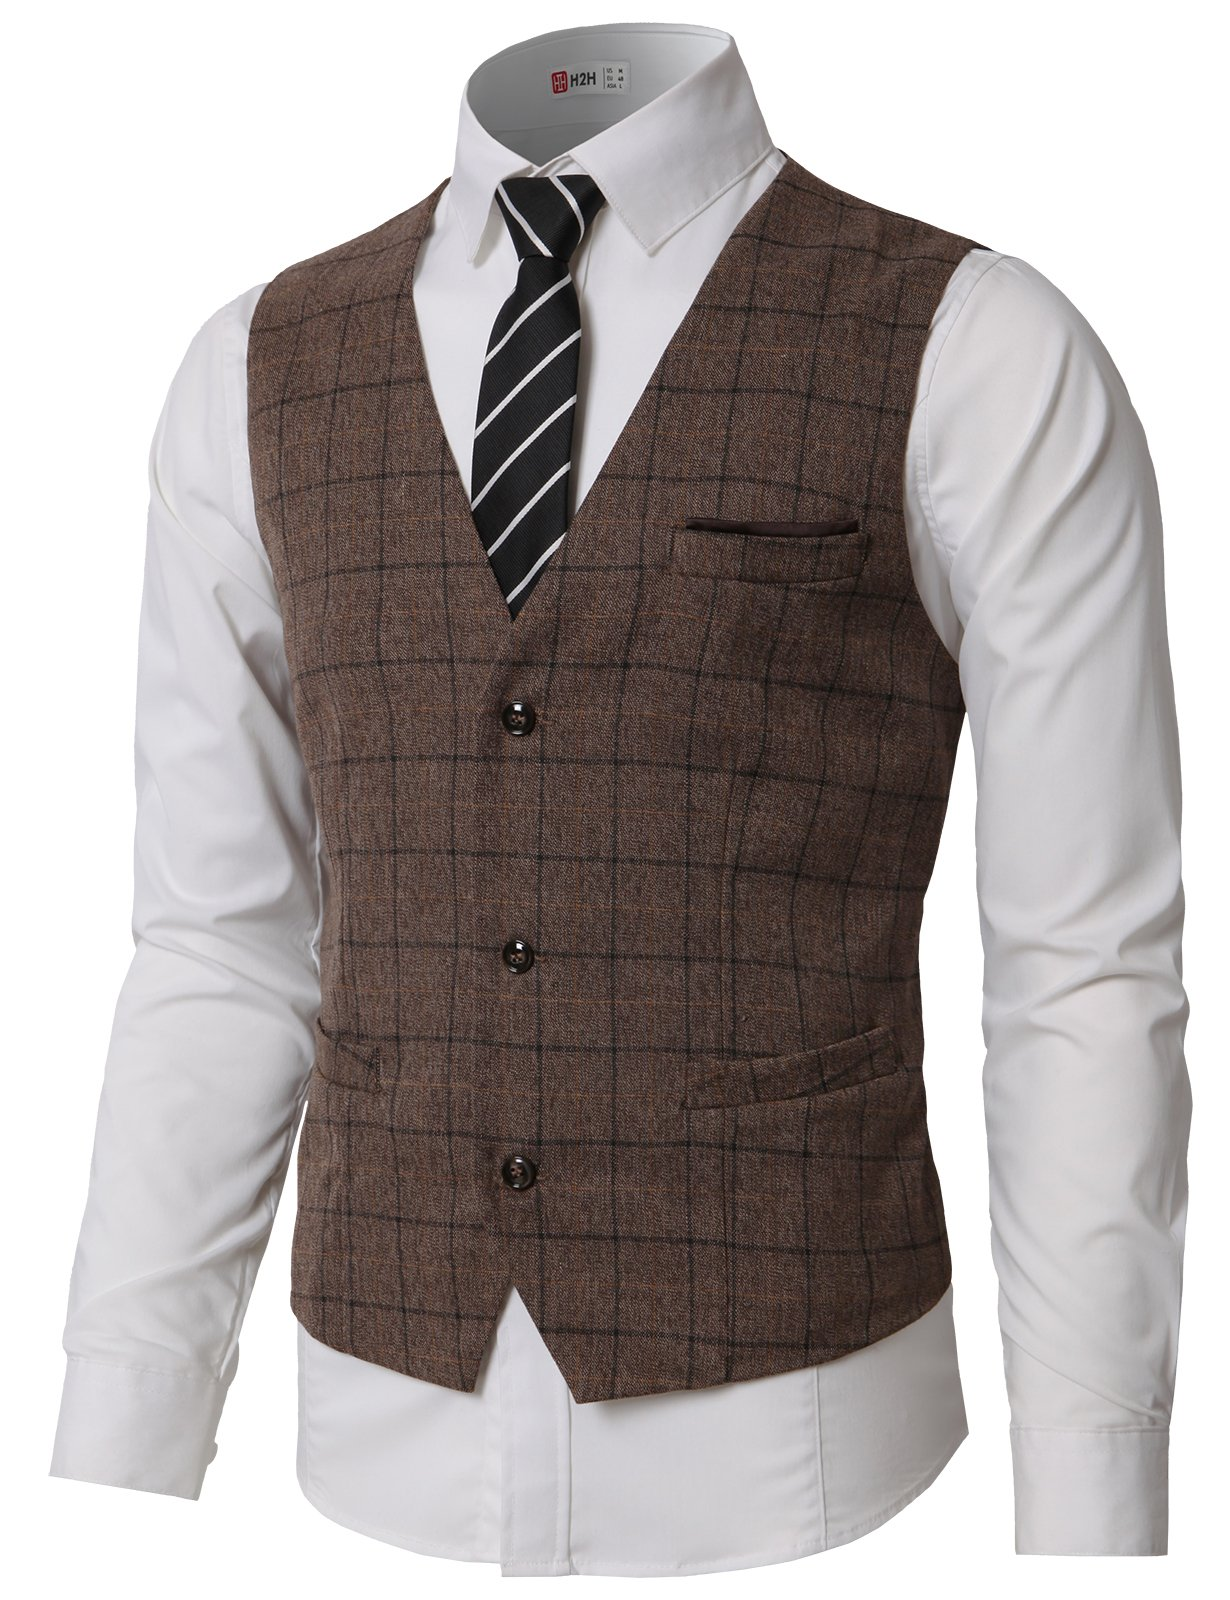 H2H Mens Top Designed Casual Slim Fit Skinny Dress Vest Waistcoat Brown US 2XL/Asia 3XL (CMOV047)